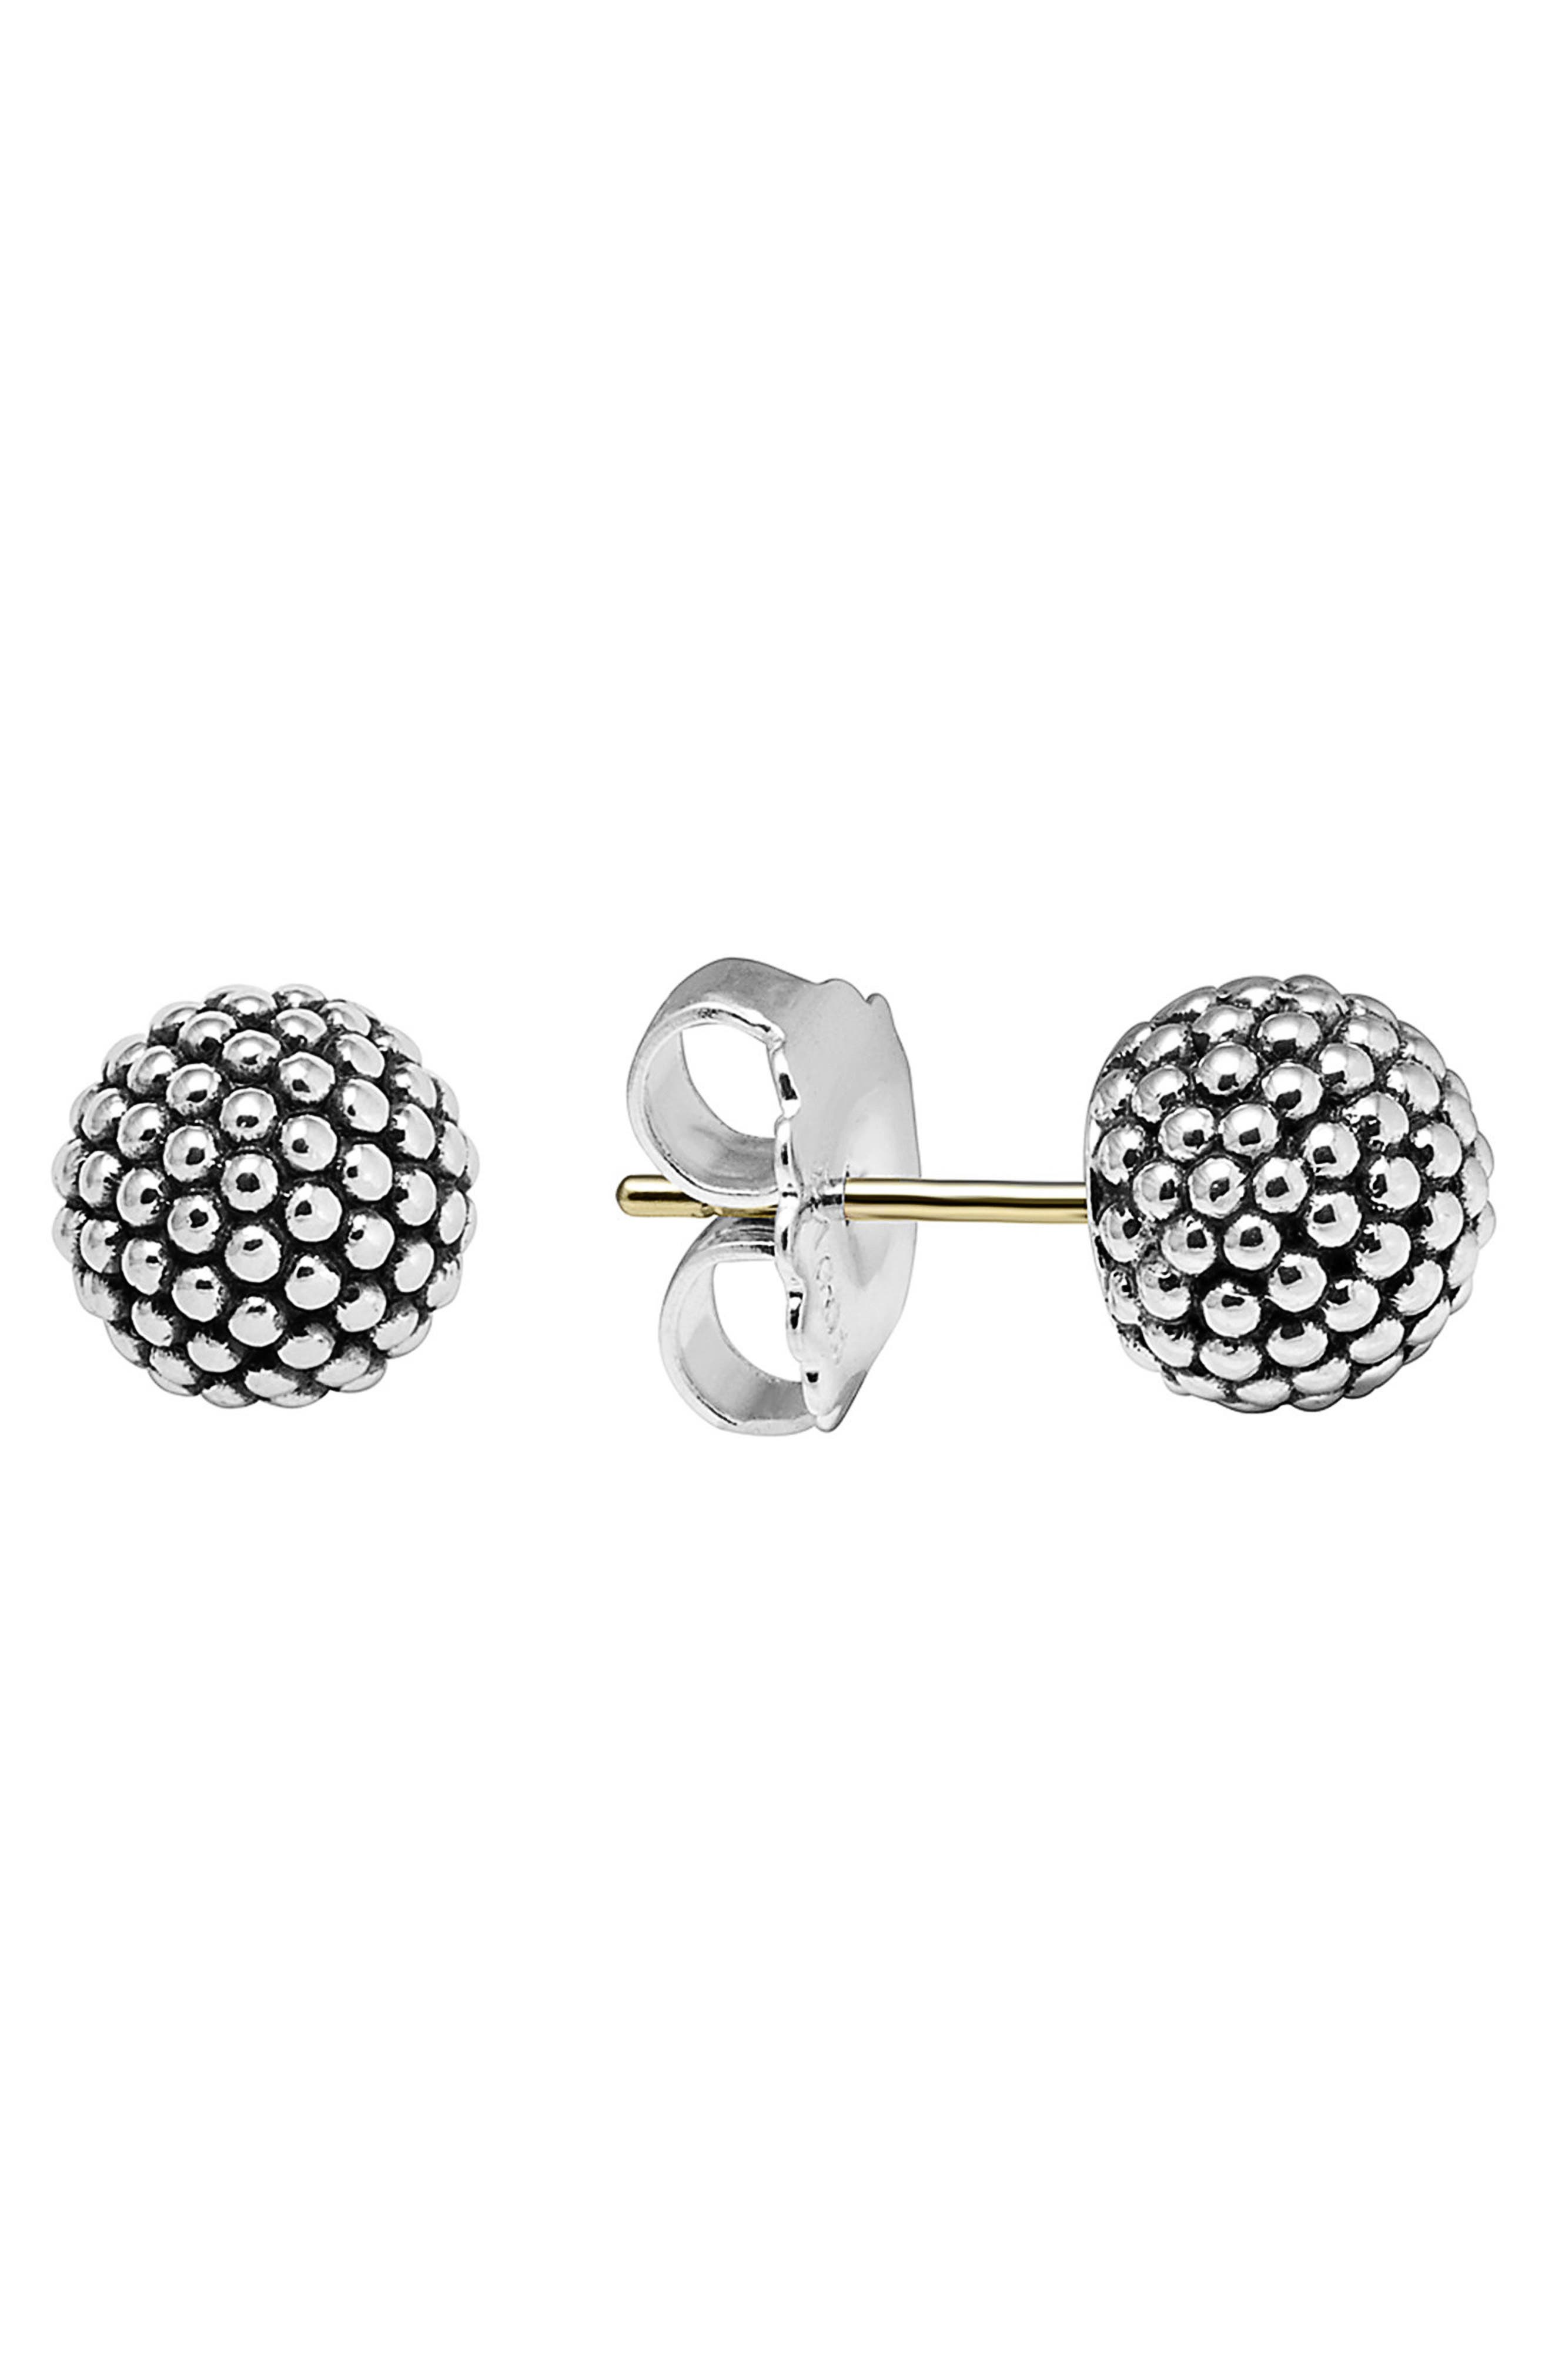 Main Image - LAGOS 'Columbus Circle' Ball Stud Earrings